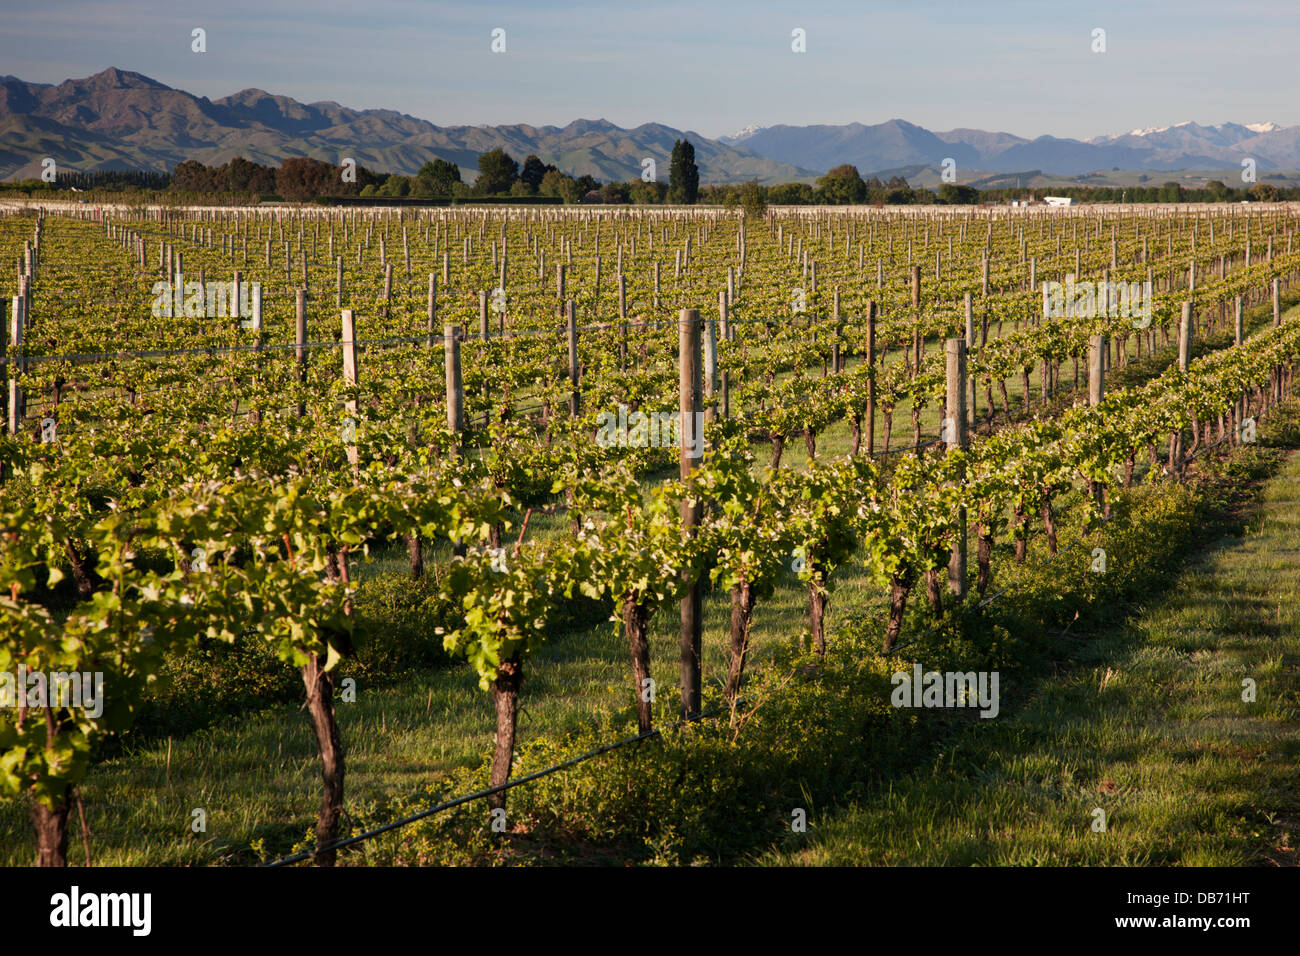 South Pacific, New Zealand, South Island. One of many vineyards in the Marlborough region. - Stock Image